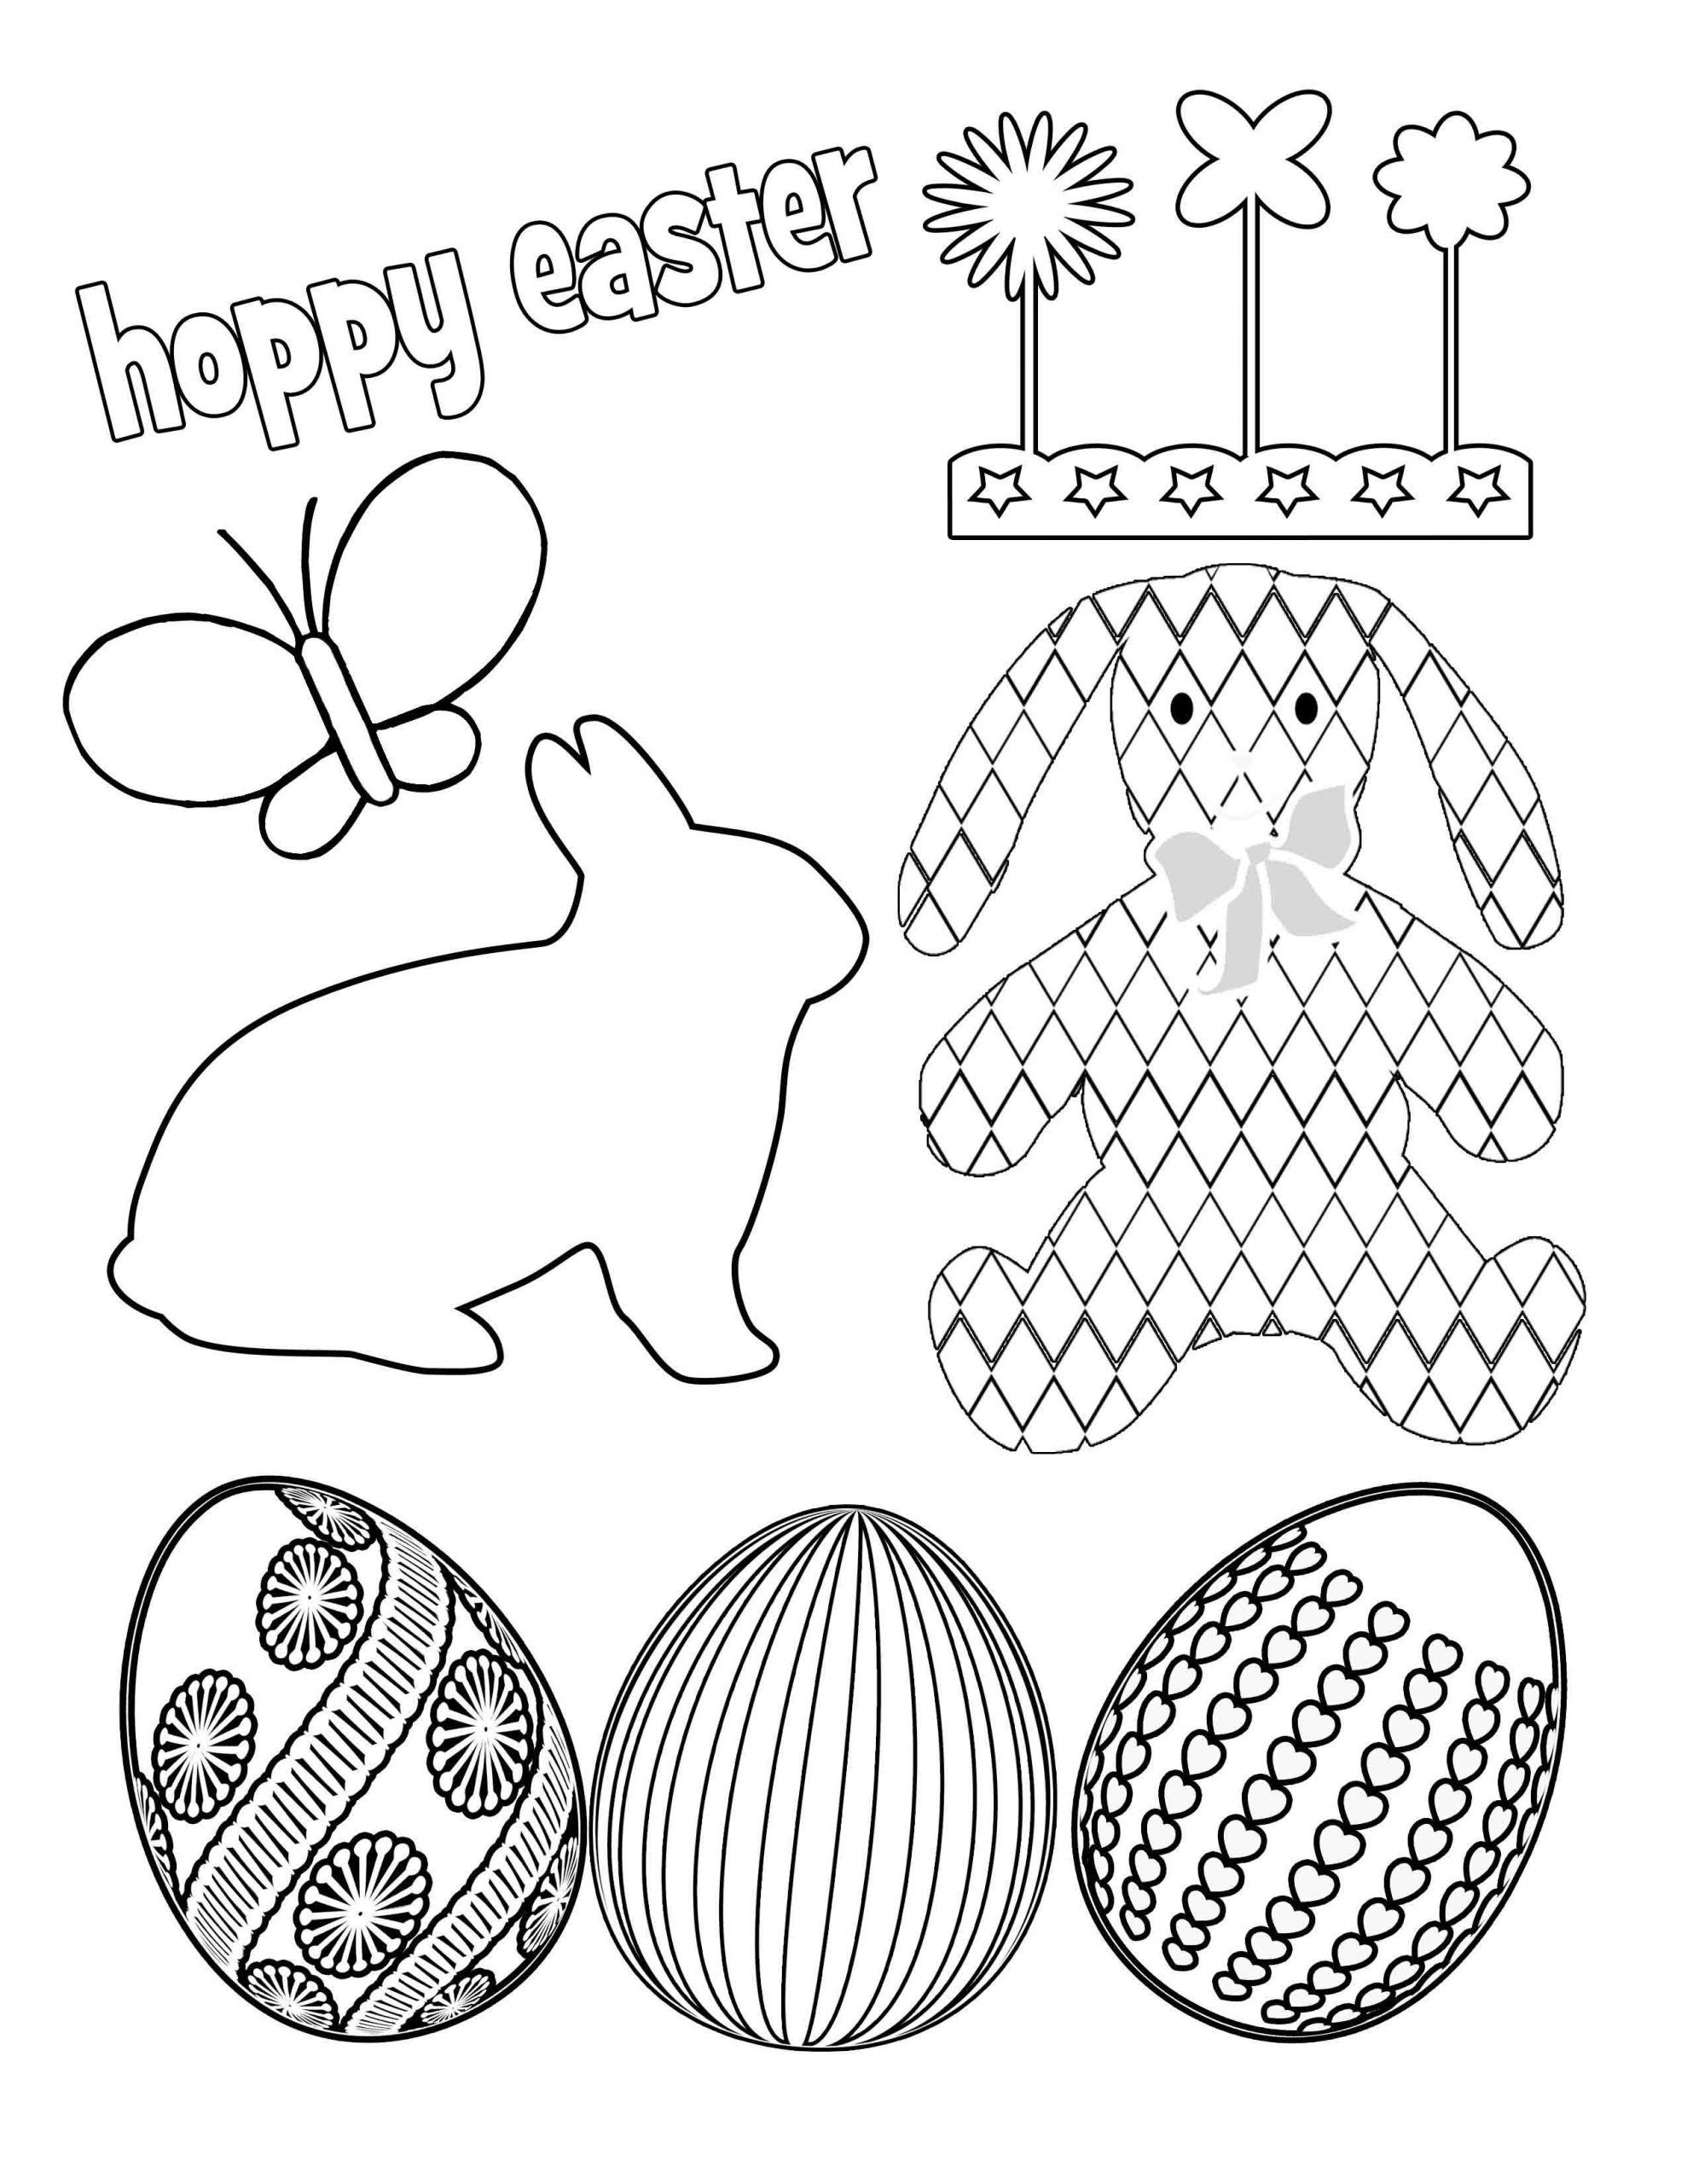 7 Forest Animals Preschool Worksheets Easterring For Kids